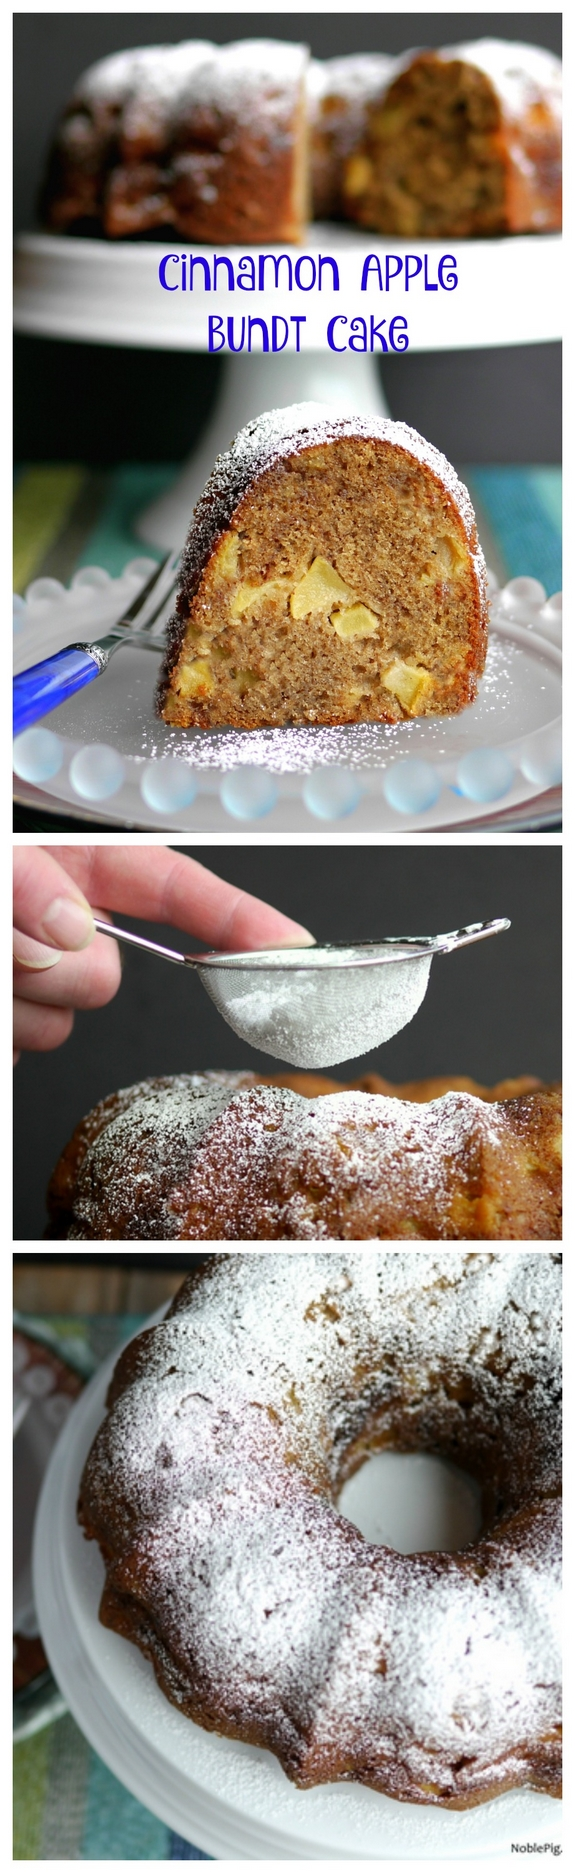 Other Cinnamon Apple Cakes you might like: